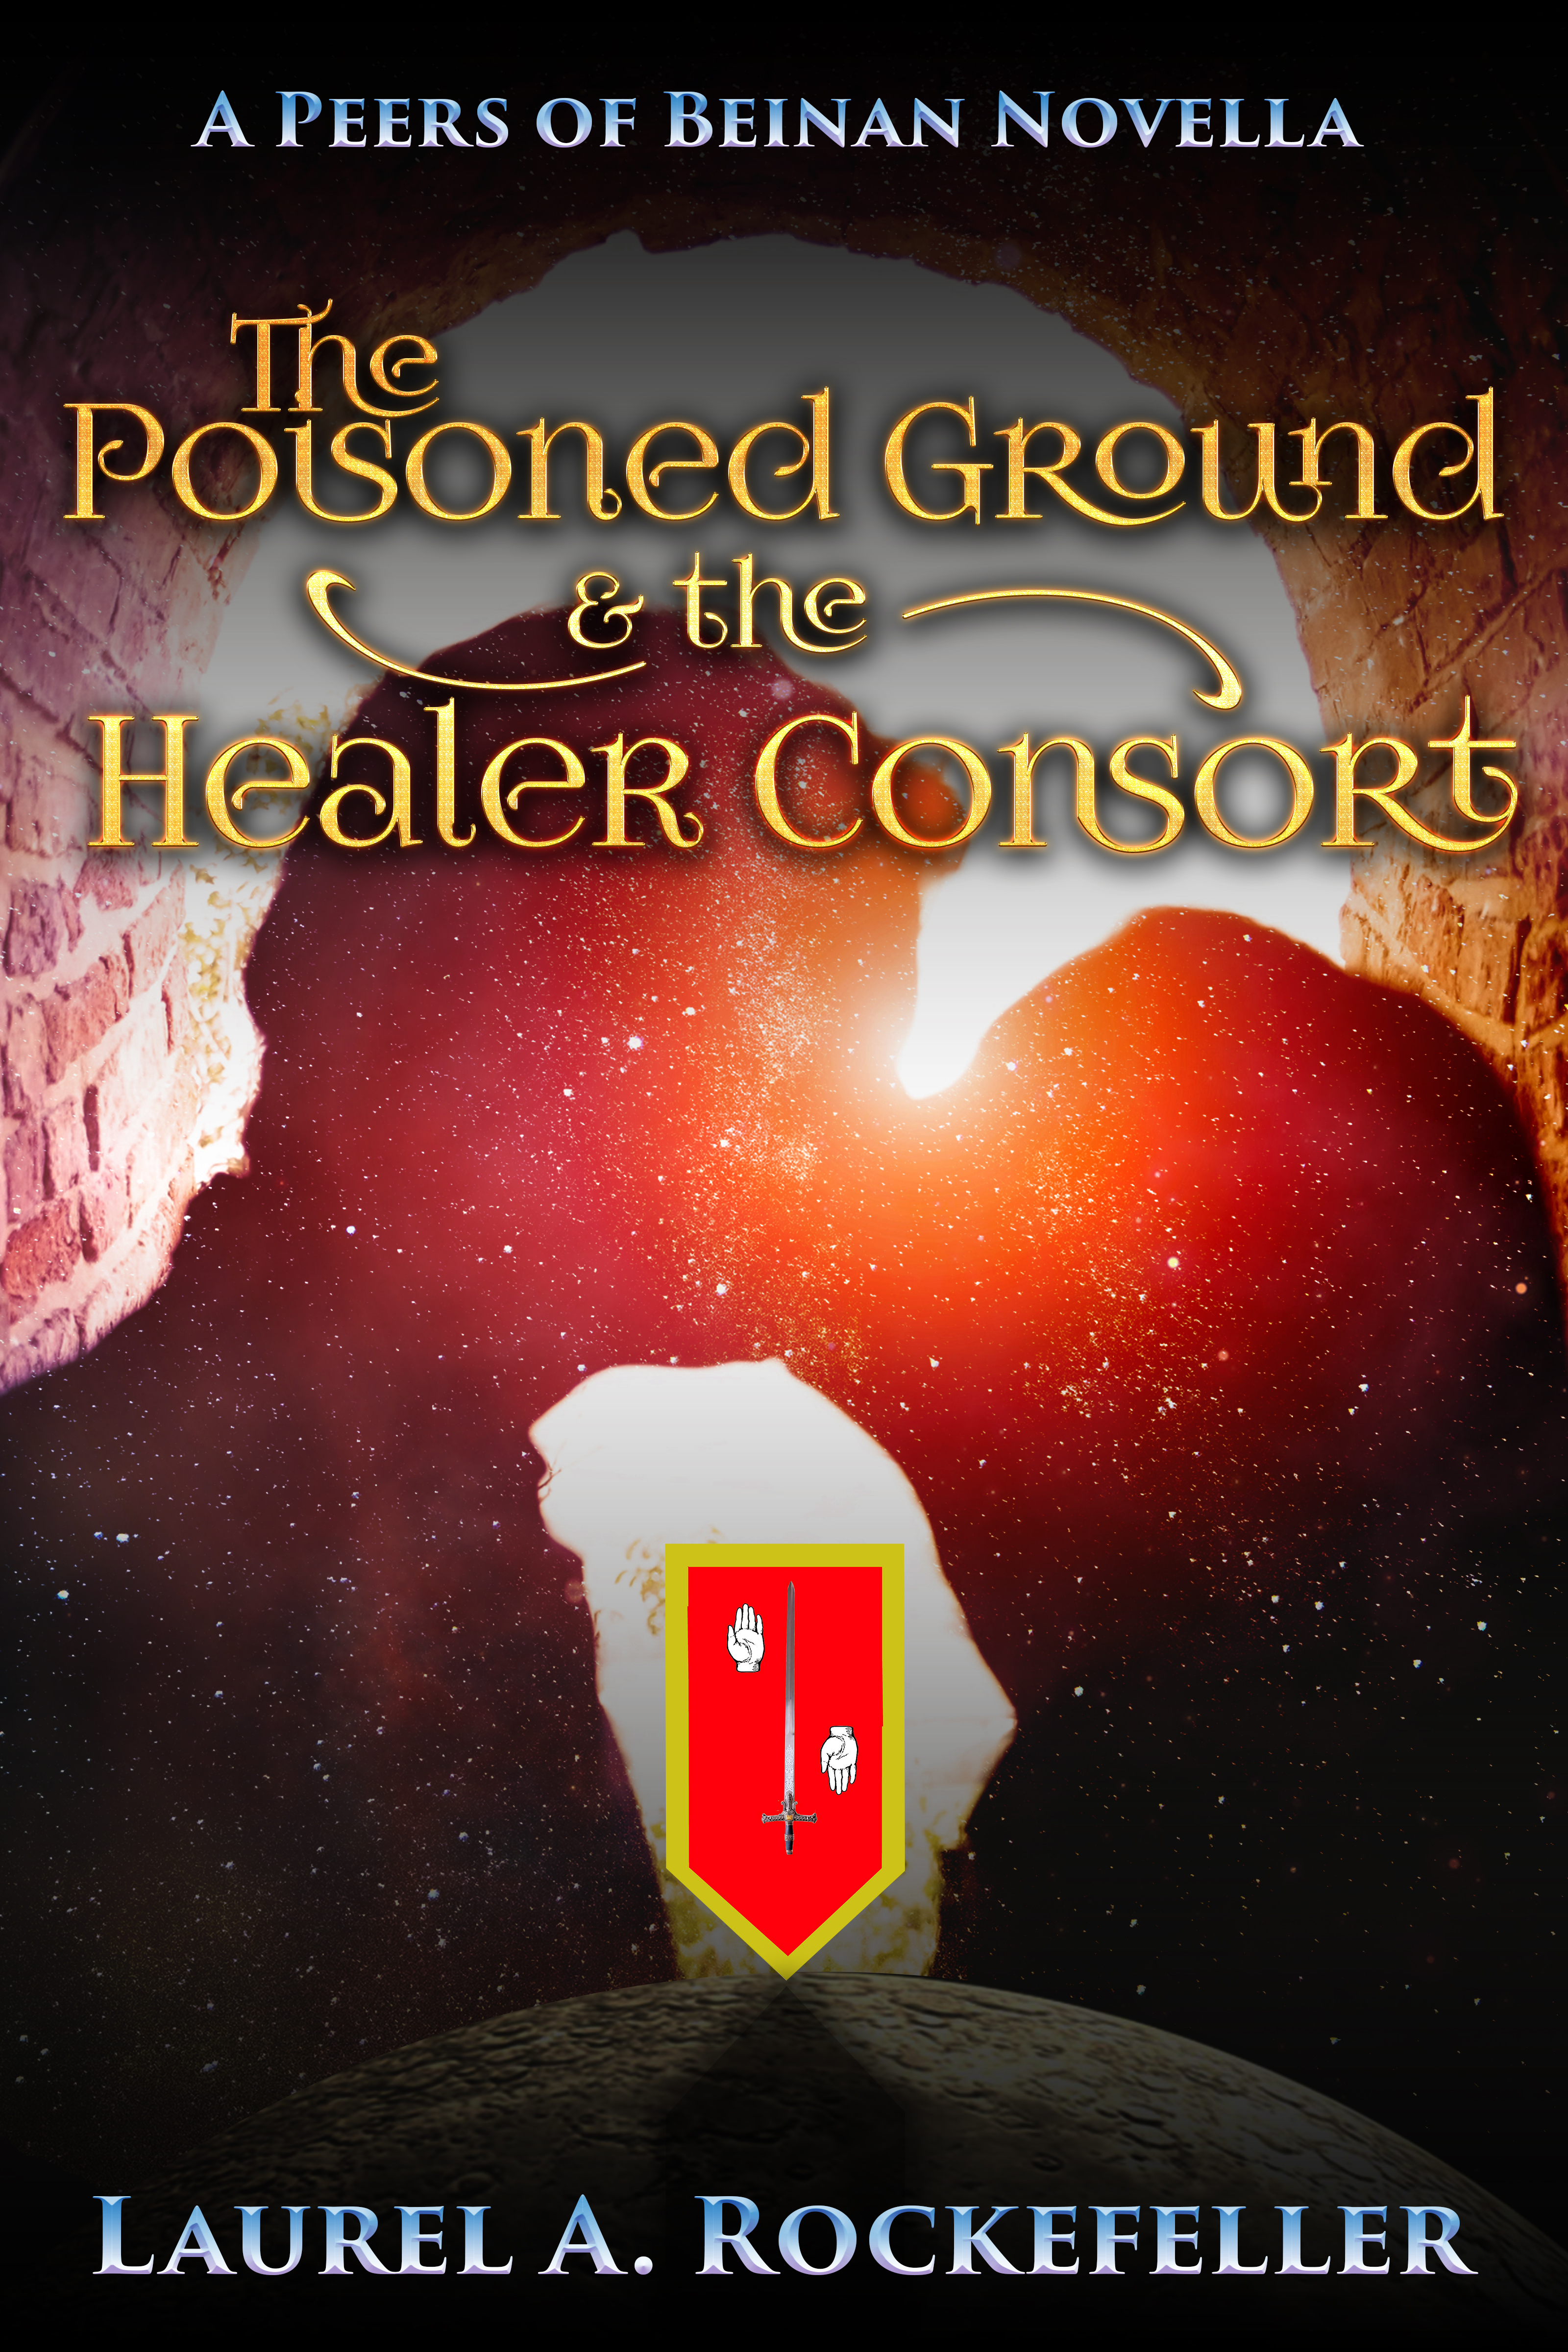 The poisoned ground and the healer consort